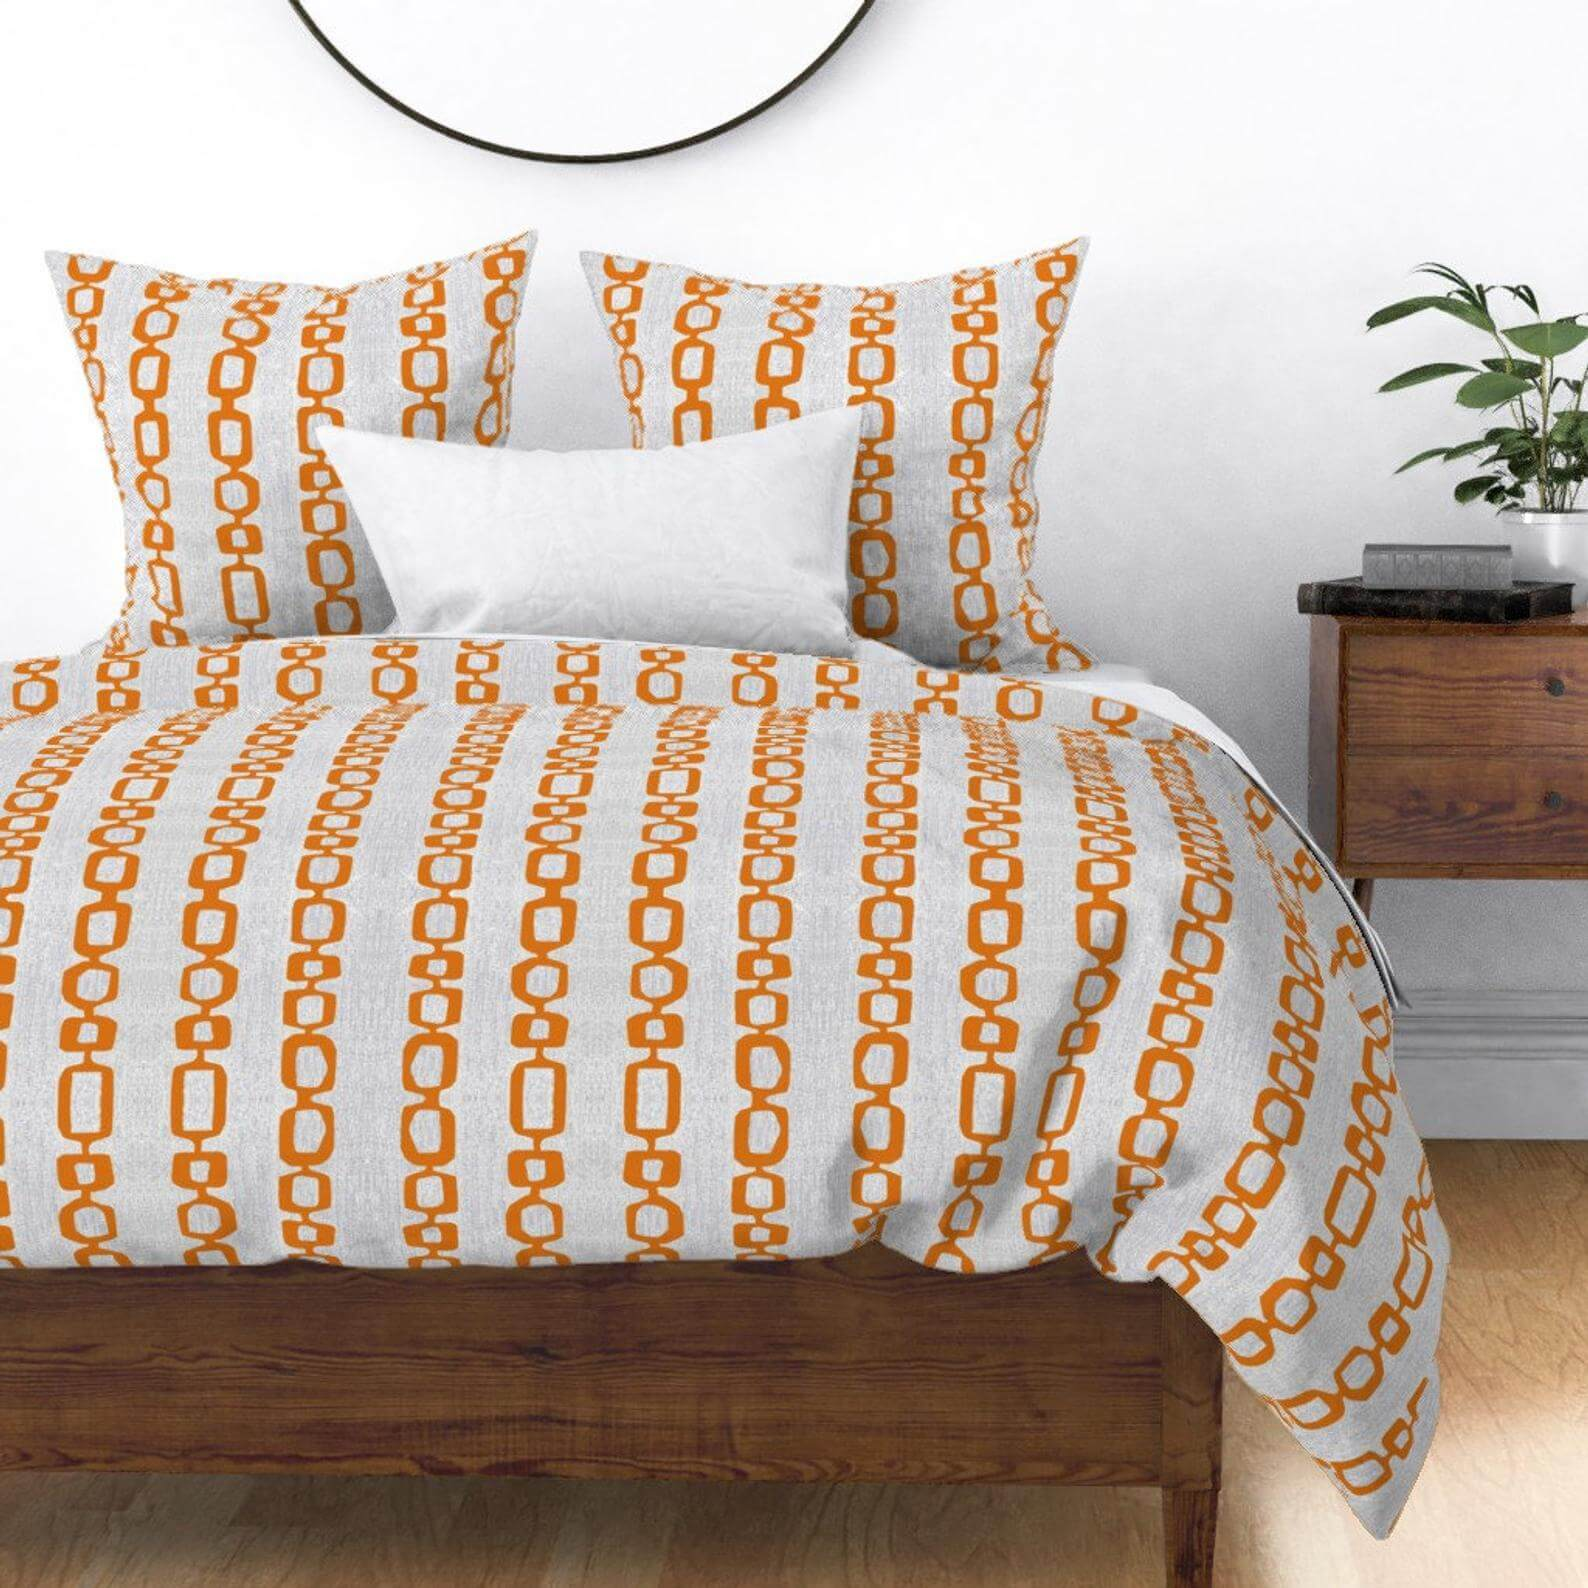 Gray-based mid century bedding with a orange link pattern.